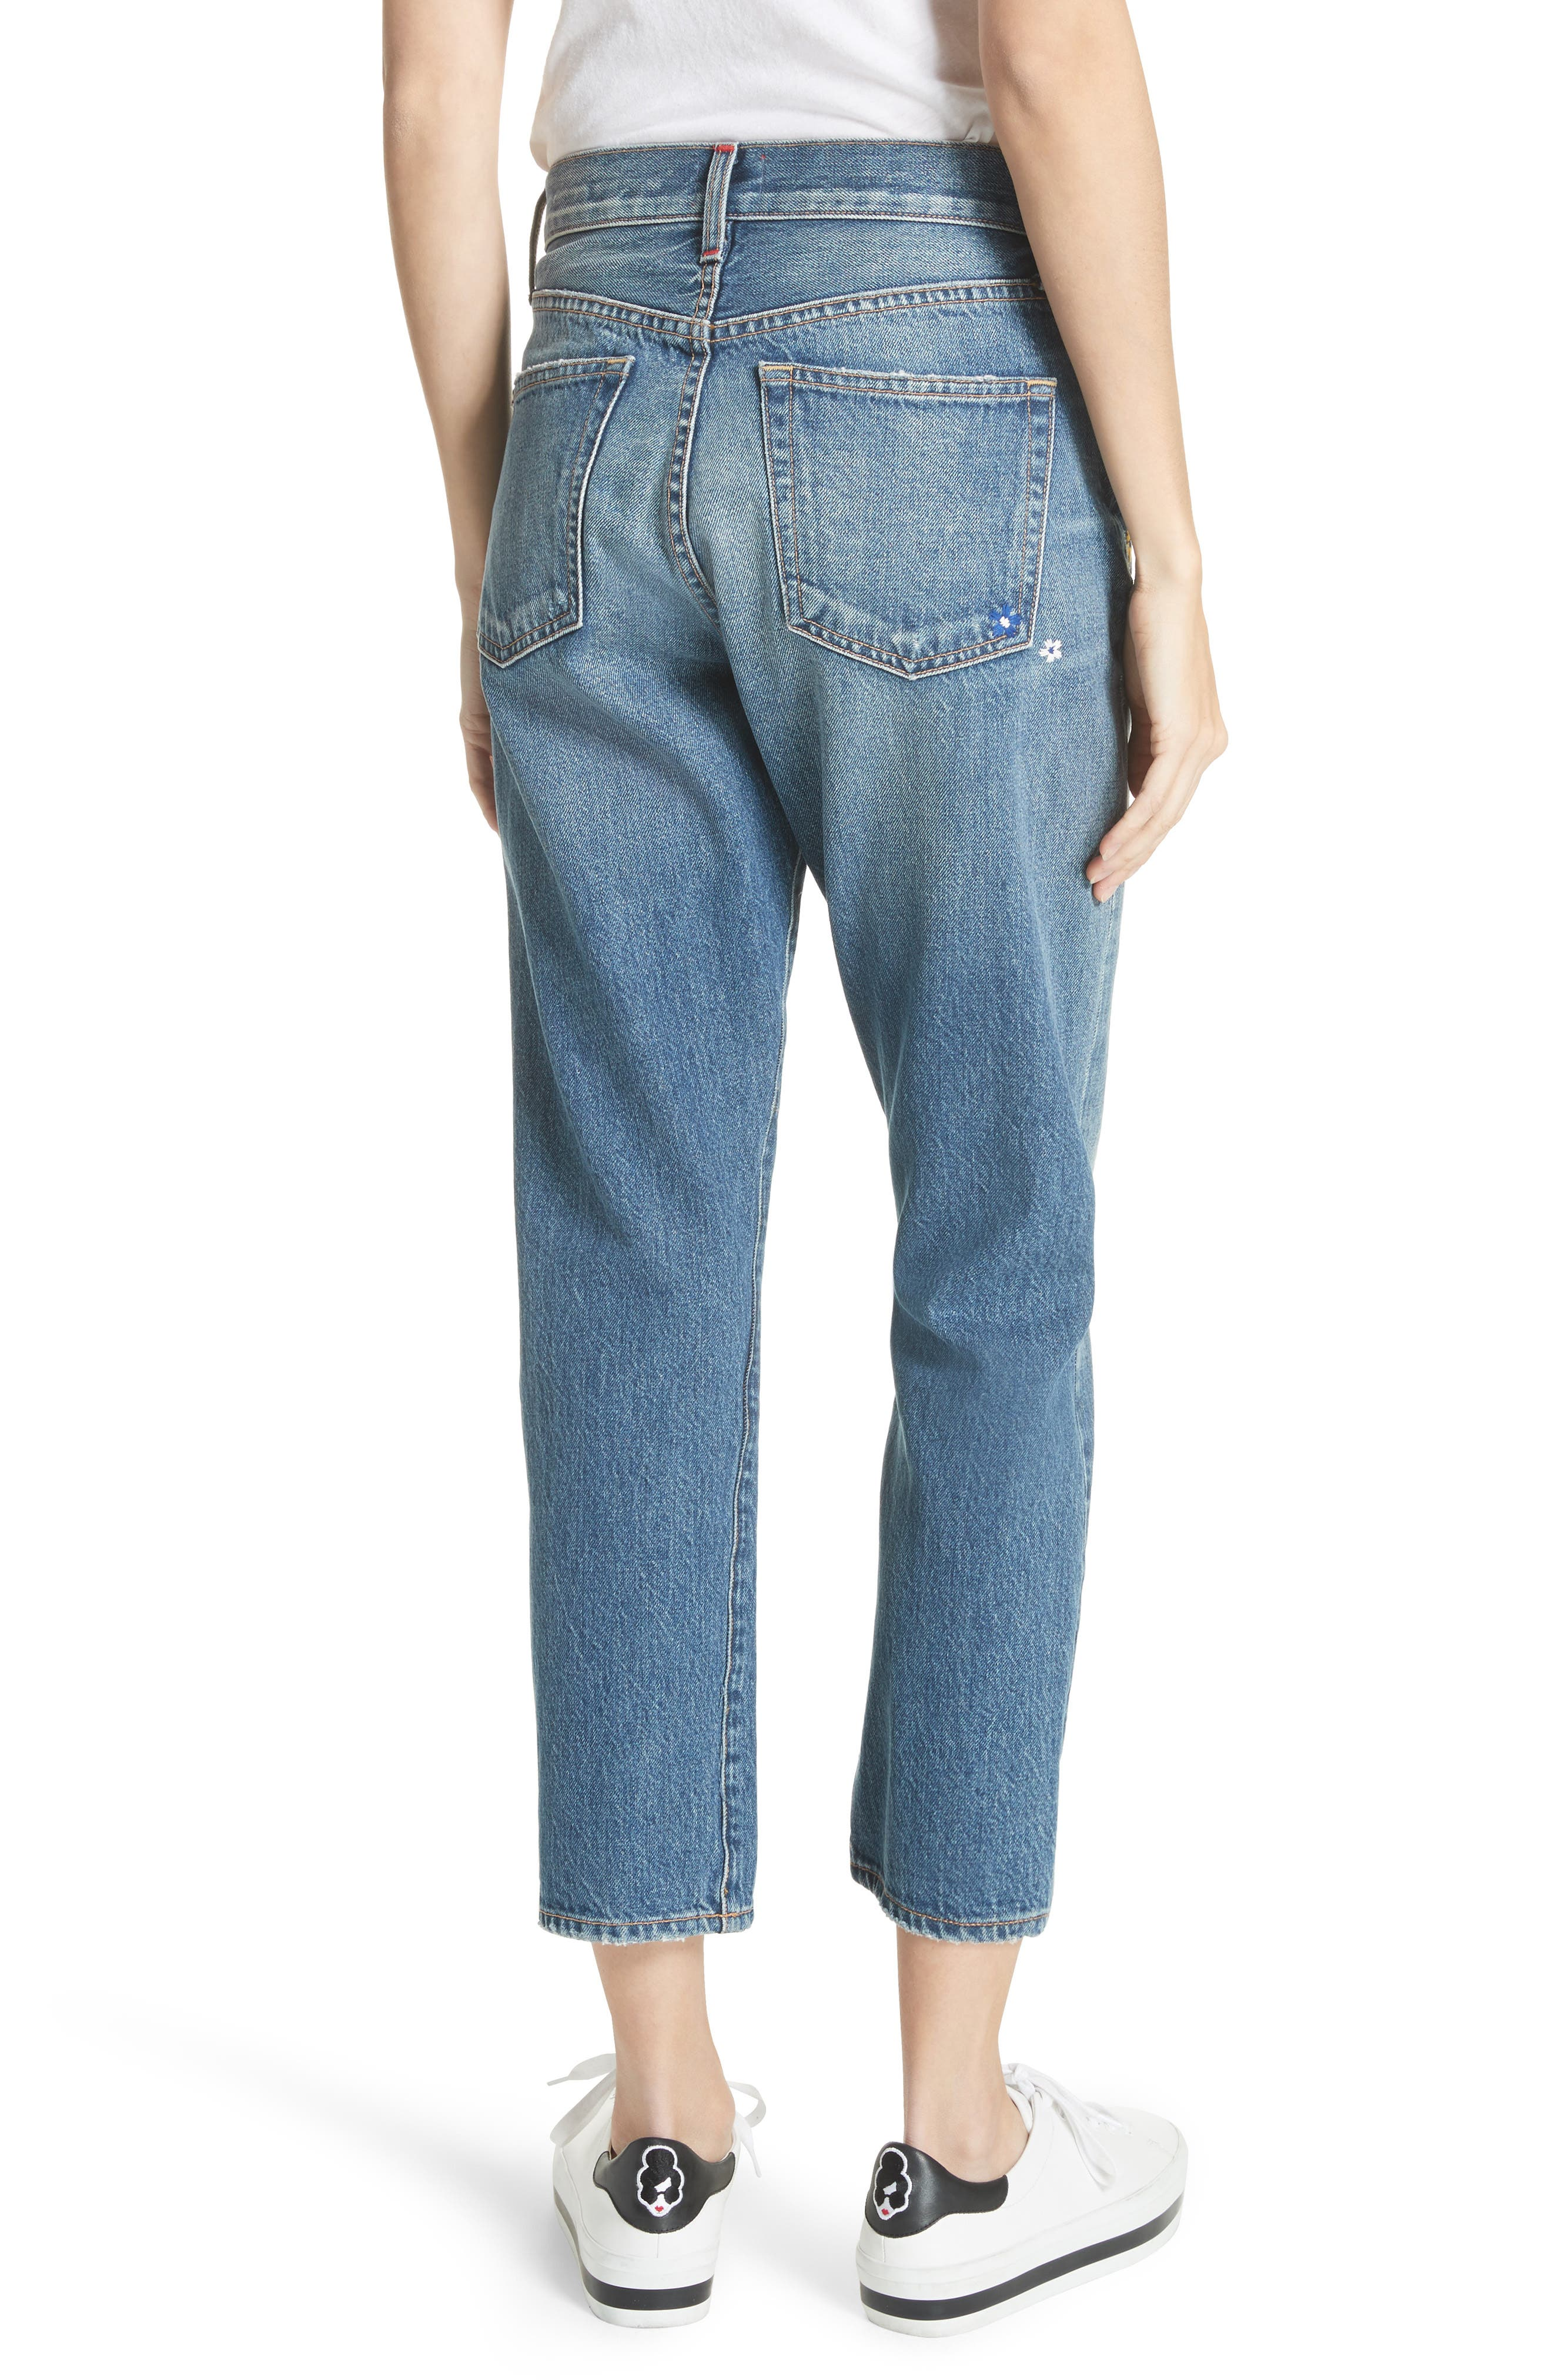 AO.LA Amazing Embroidered Slim Girlfriend Jeans,                             Alternate thumbnail 2, color,                             496